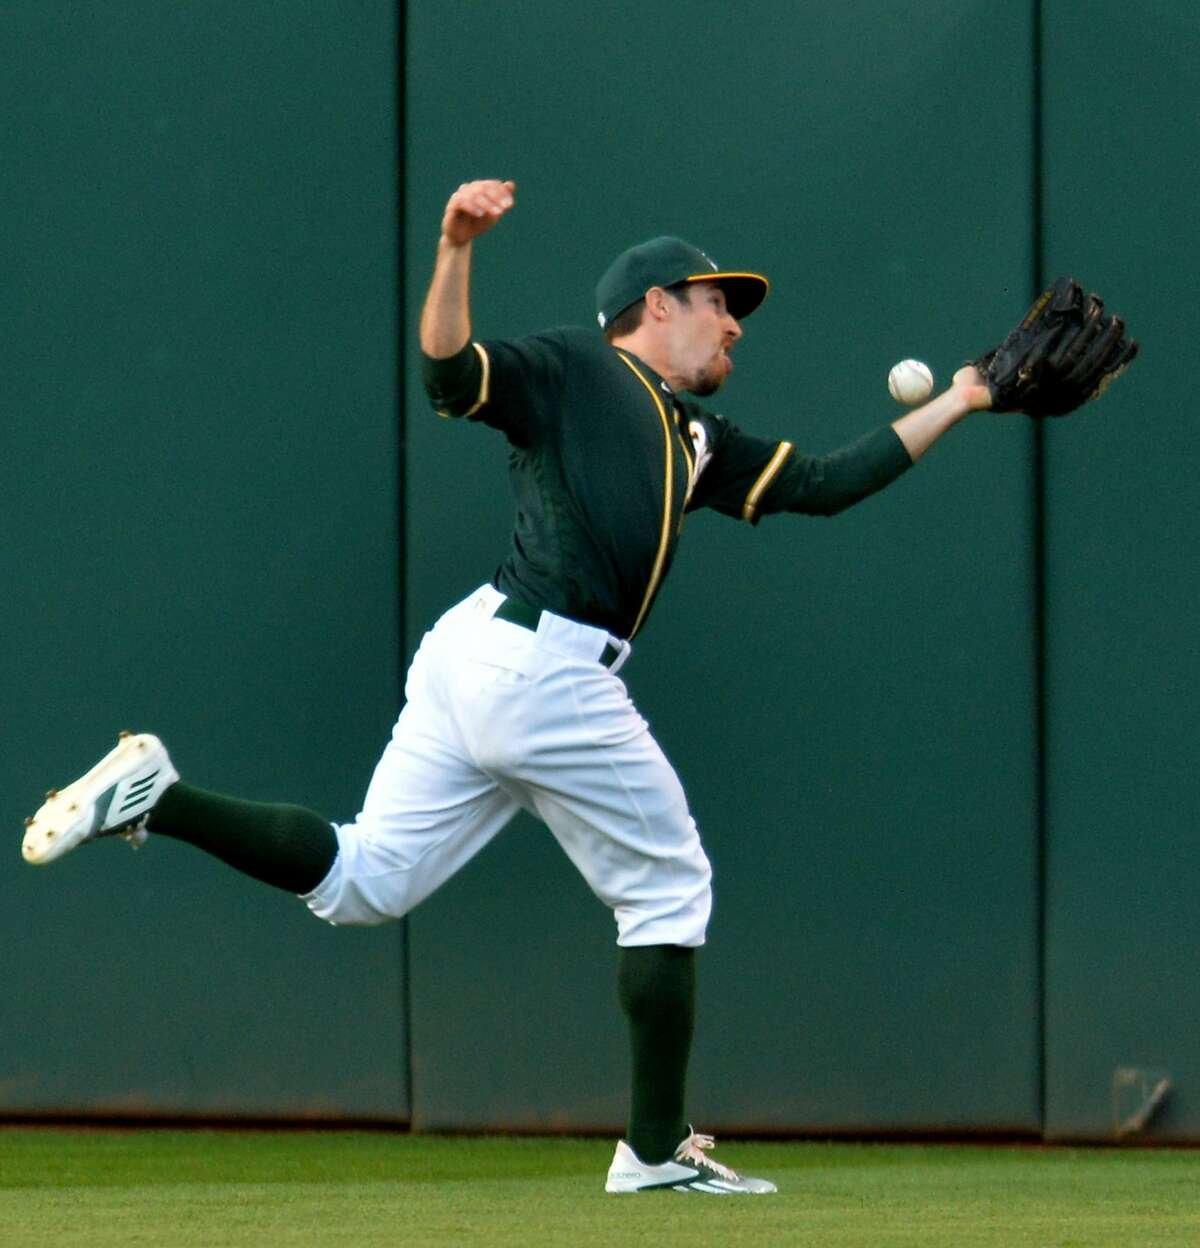 Oakland Athletics centerfielder Billy Burns is unable to catch double by the San Francisco Giants' Madison Bumgarner in the third inning at the Coliseum in Oakland, Calif., on Thursday, June 30, 2016. (Doug Duran/Bay Area News Group/TNS)